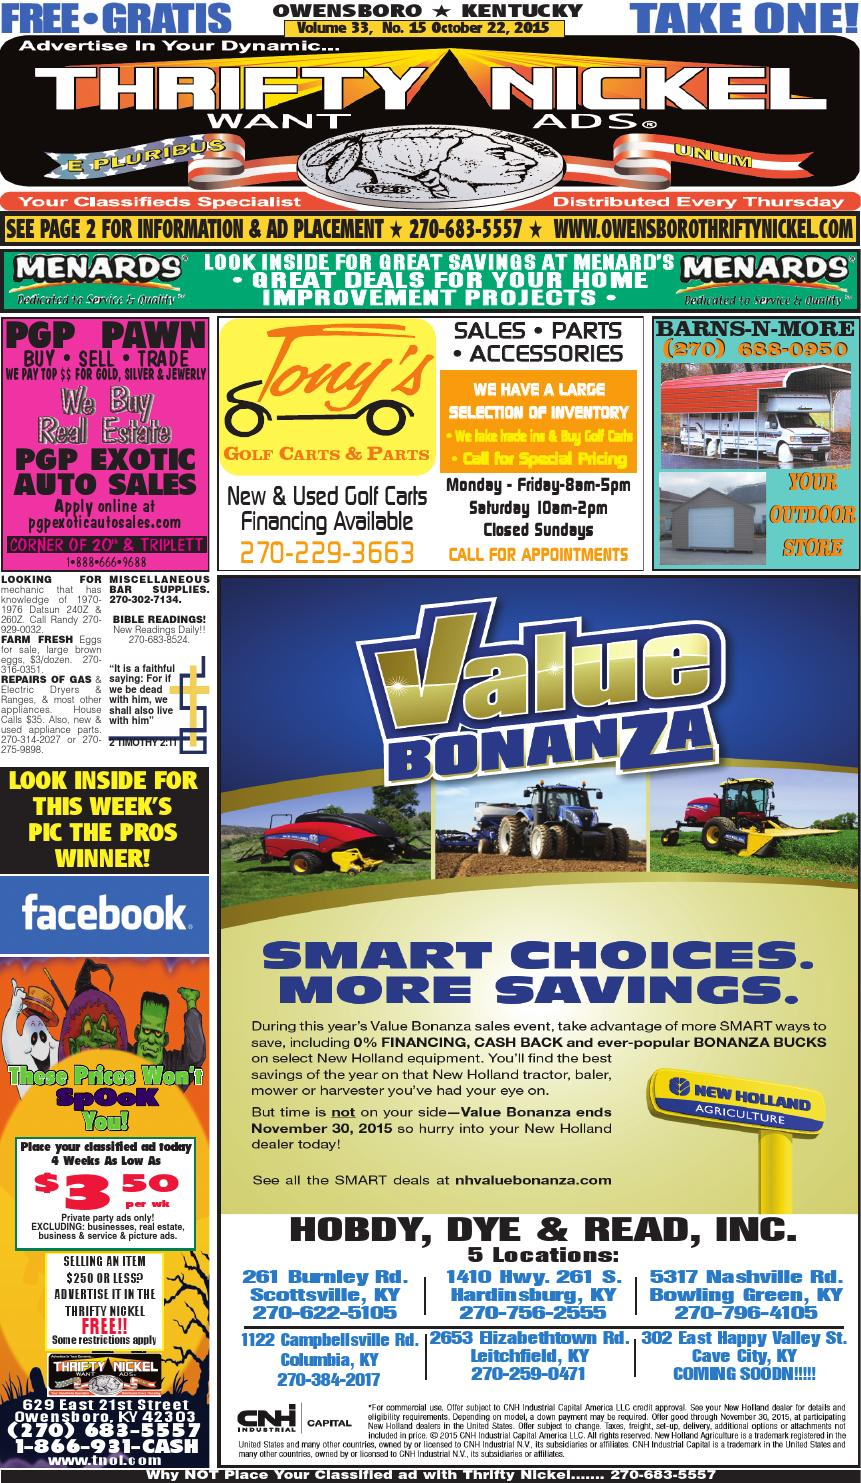 10 22 15 by CarCents American Classifieds - issuu